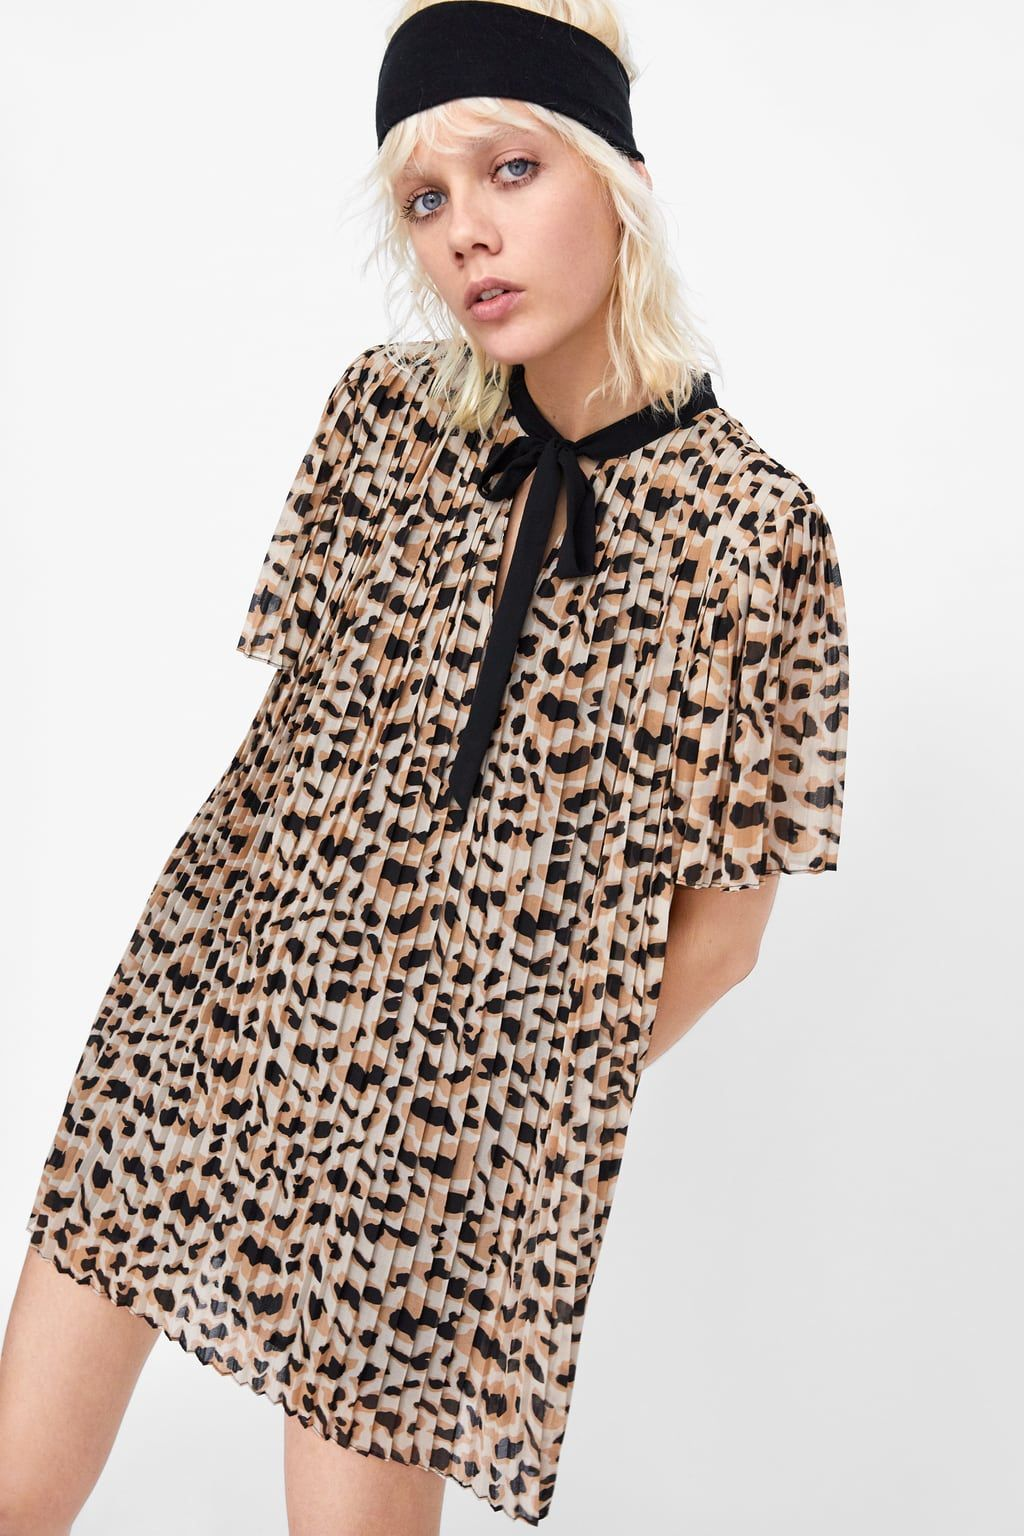 ee5dbc24f4 Image 2 of PLEATED ANIMAL PRINT JUMPSUIT DRESS from Zara